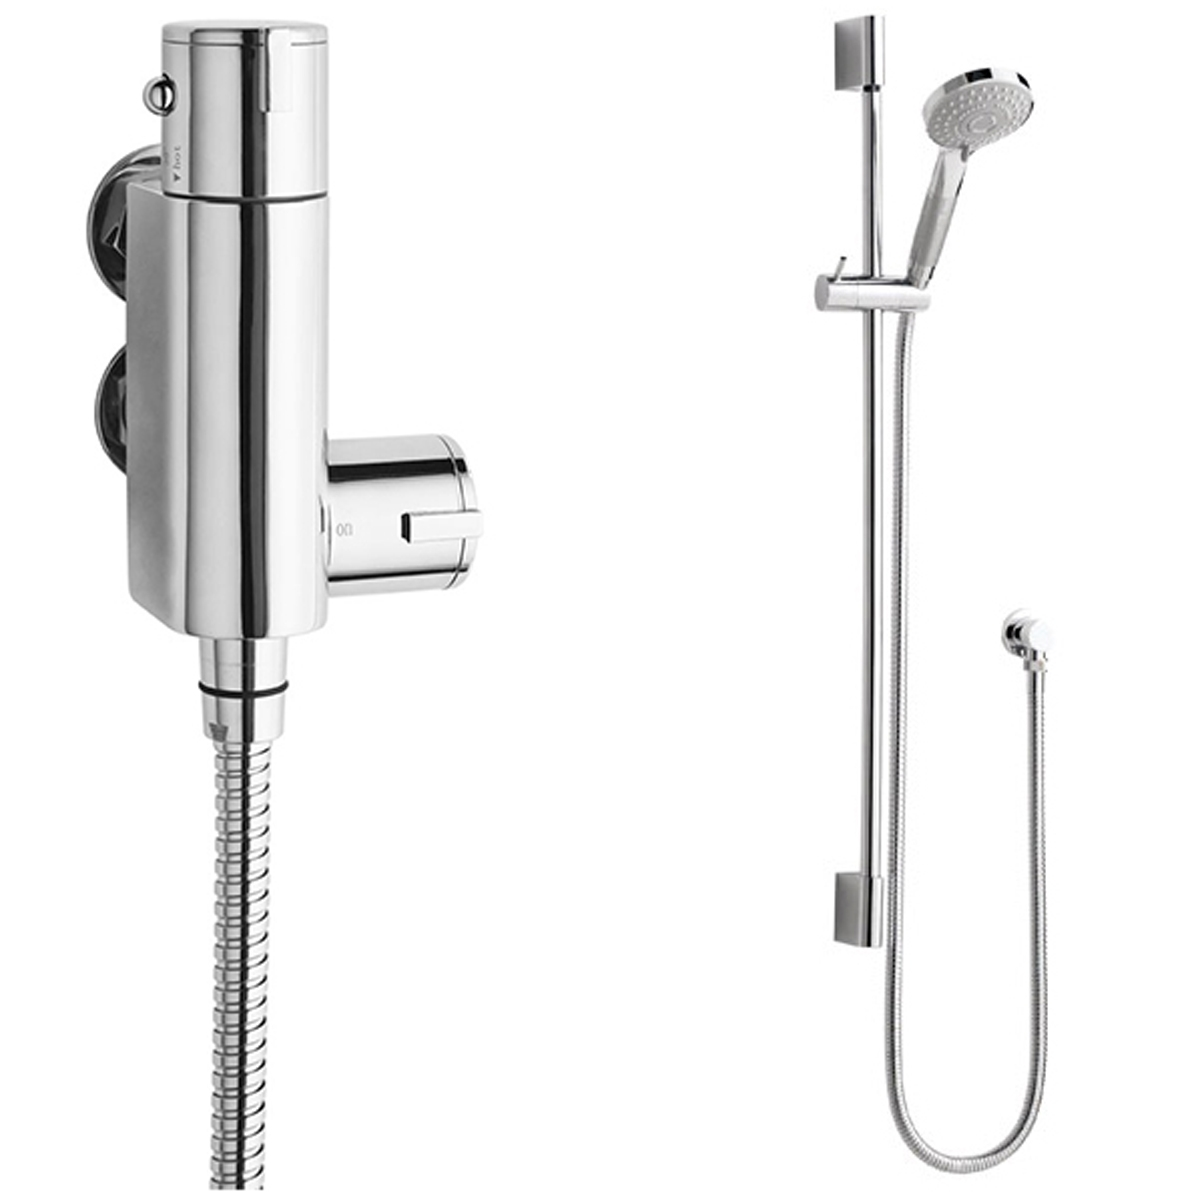 Premier Vertical Thermostatic Bar Shower Valve, Slider Shower Kit, Chrome